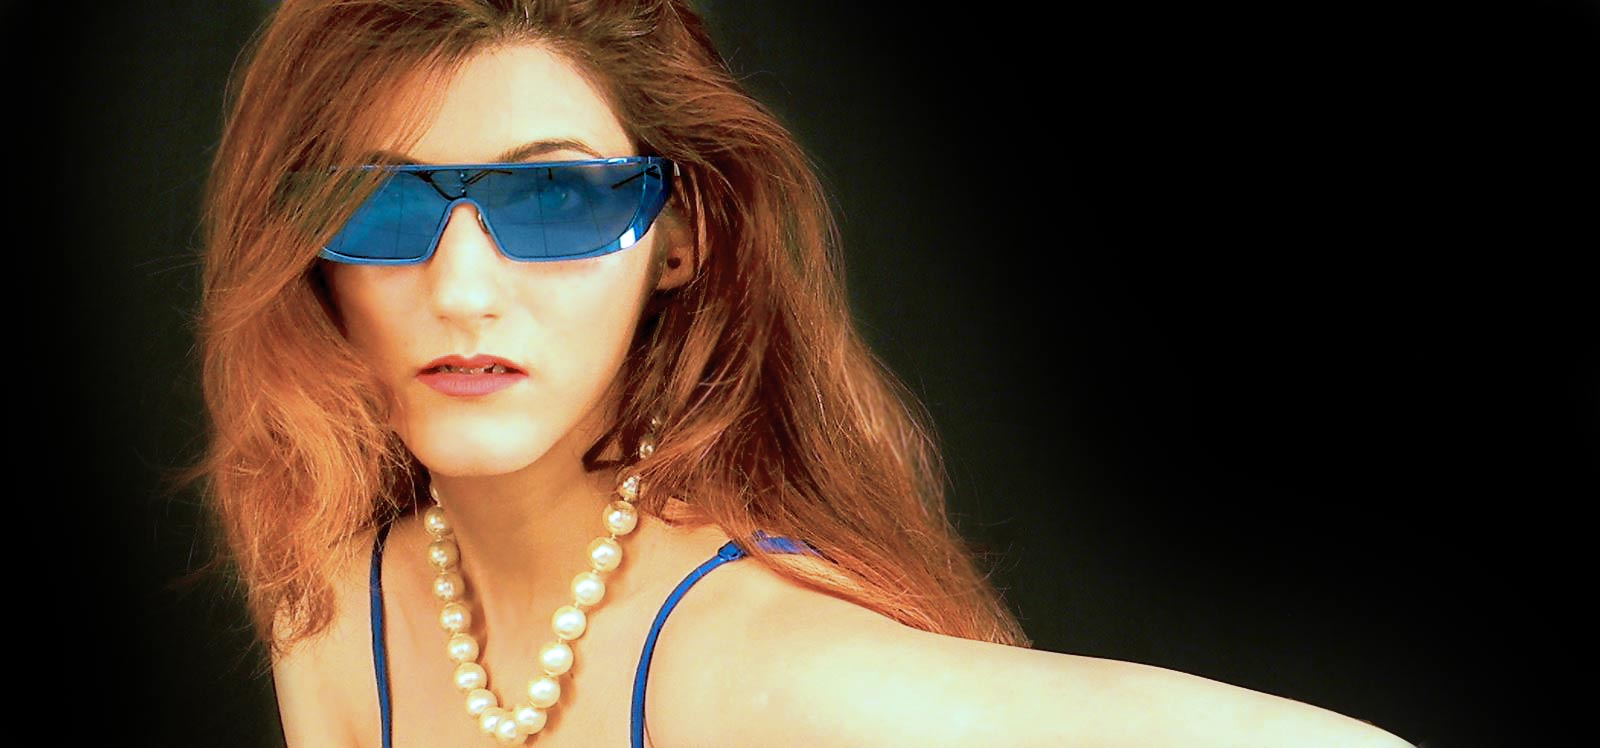 shilpa-ahuja-sunglasses-dior-summer-blue-look-makeup-peal-necklace